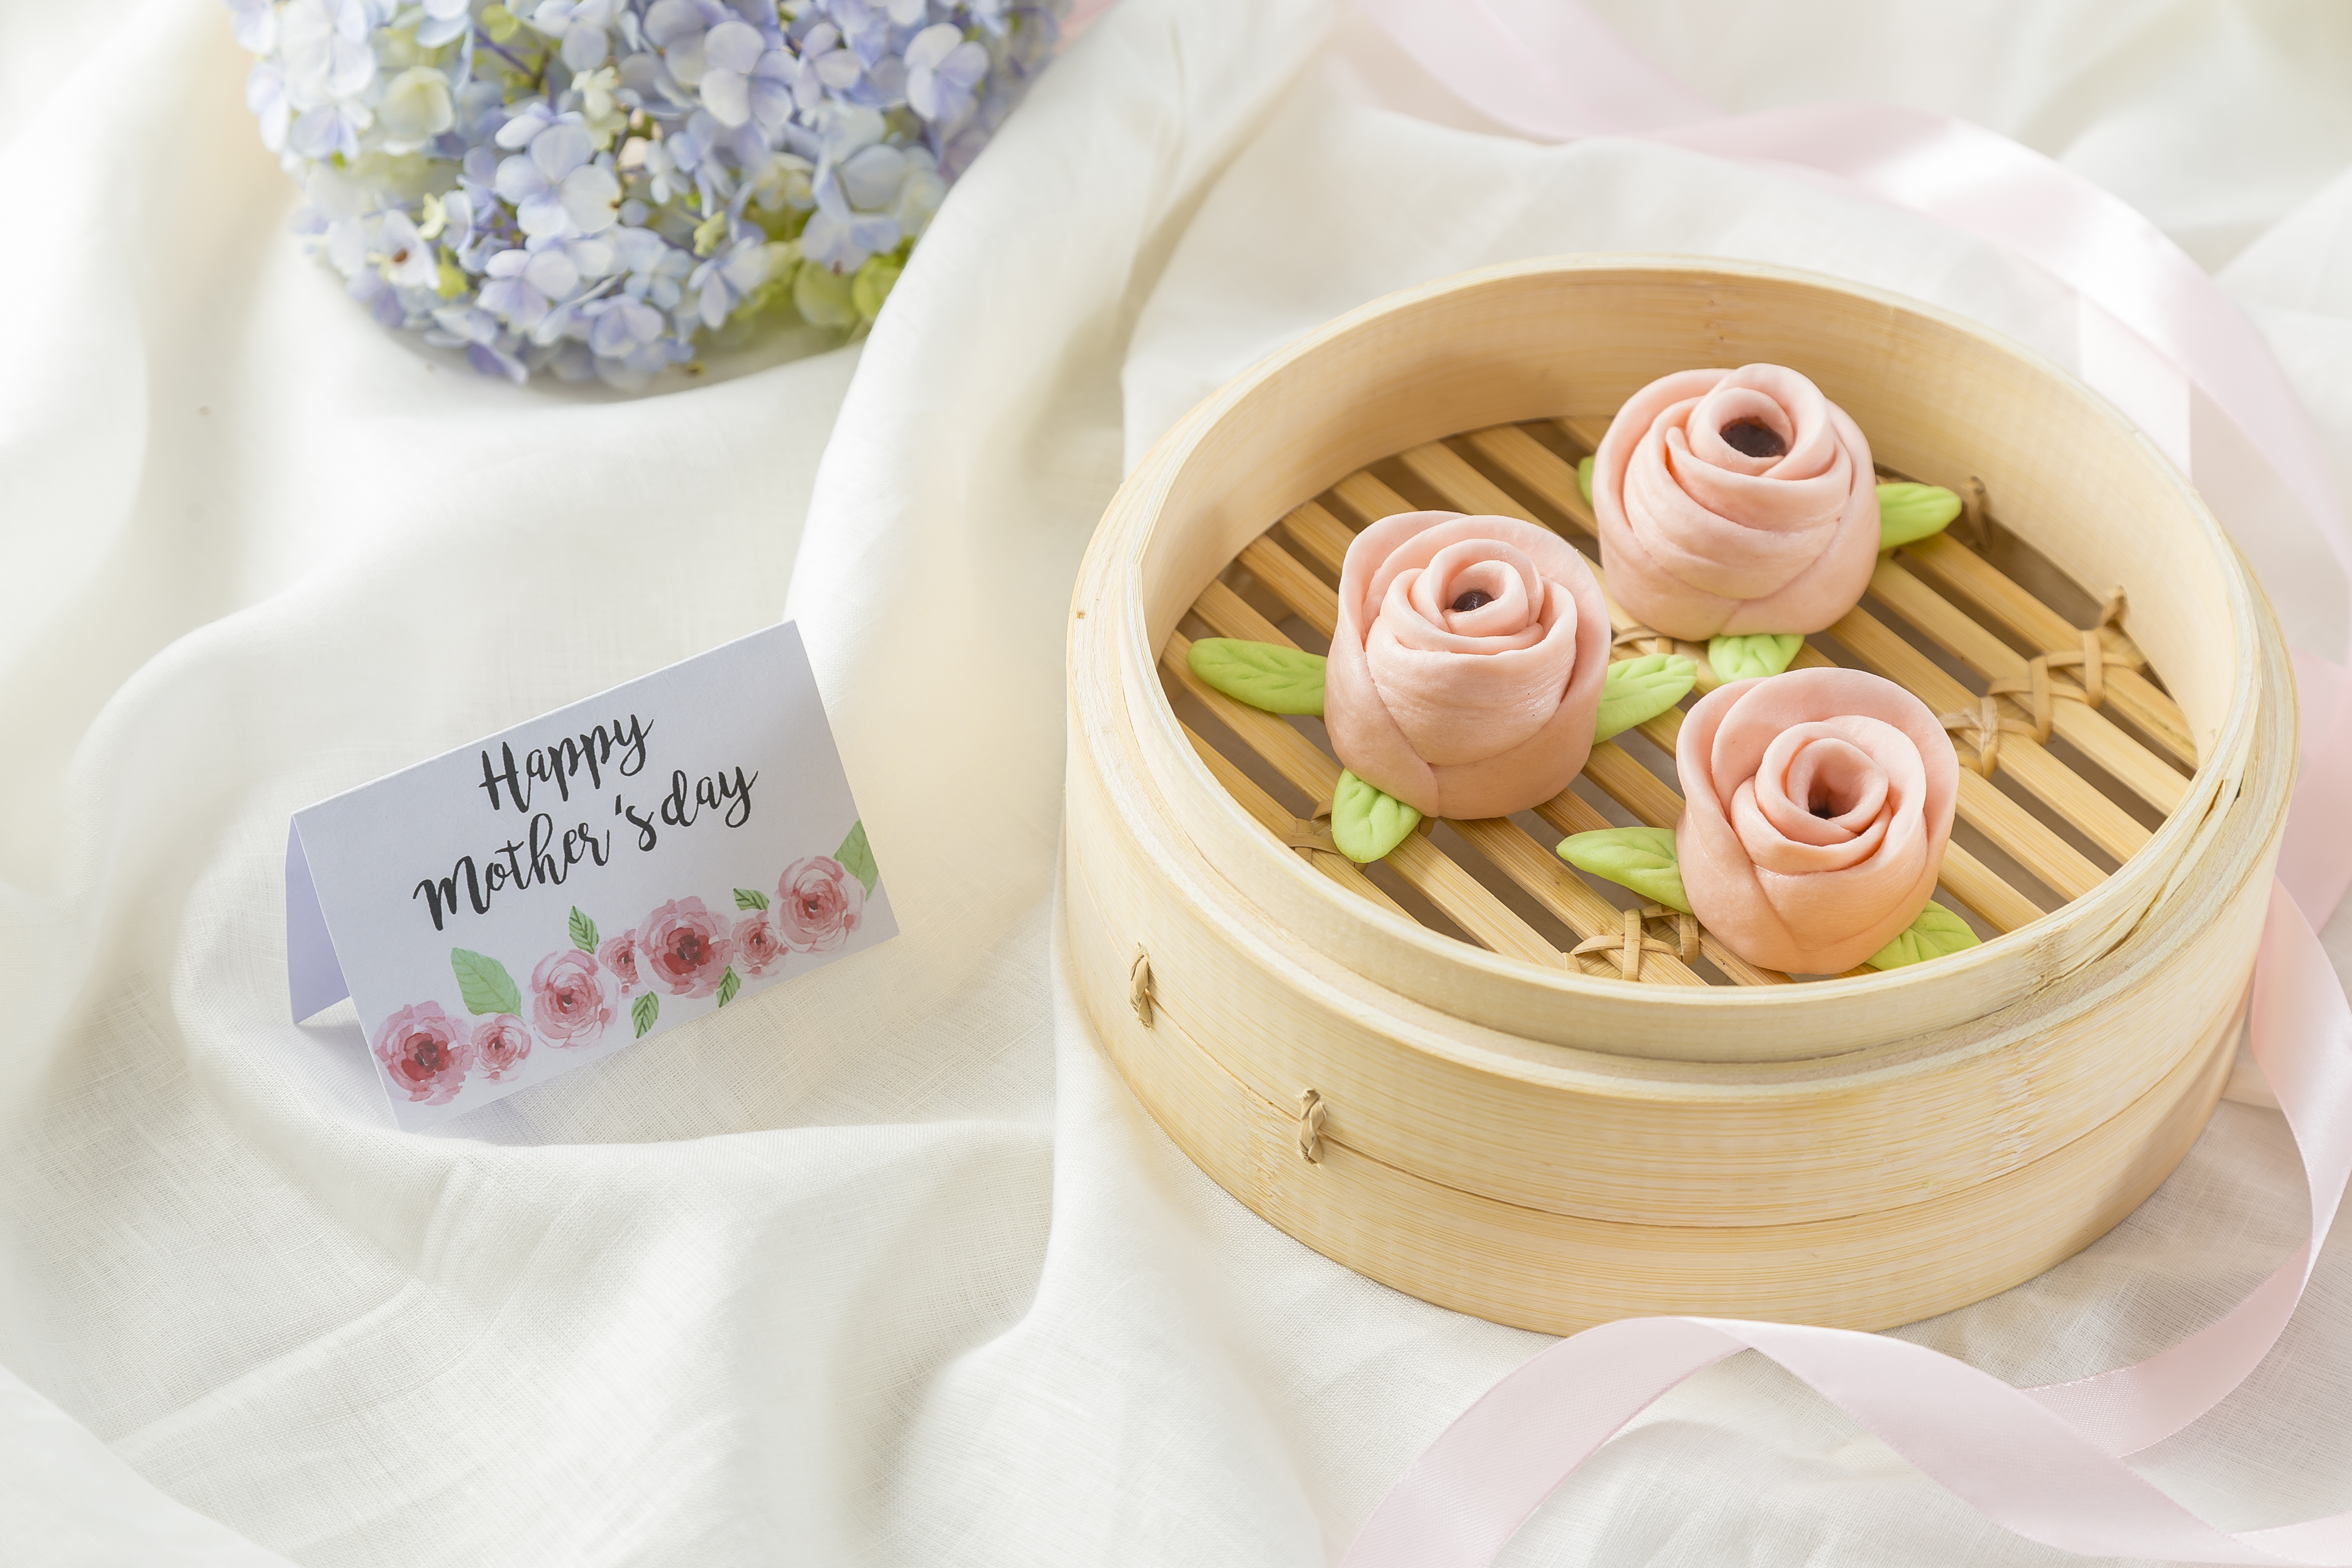 Din Tai Fung creates special treats for Mothers Day